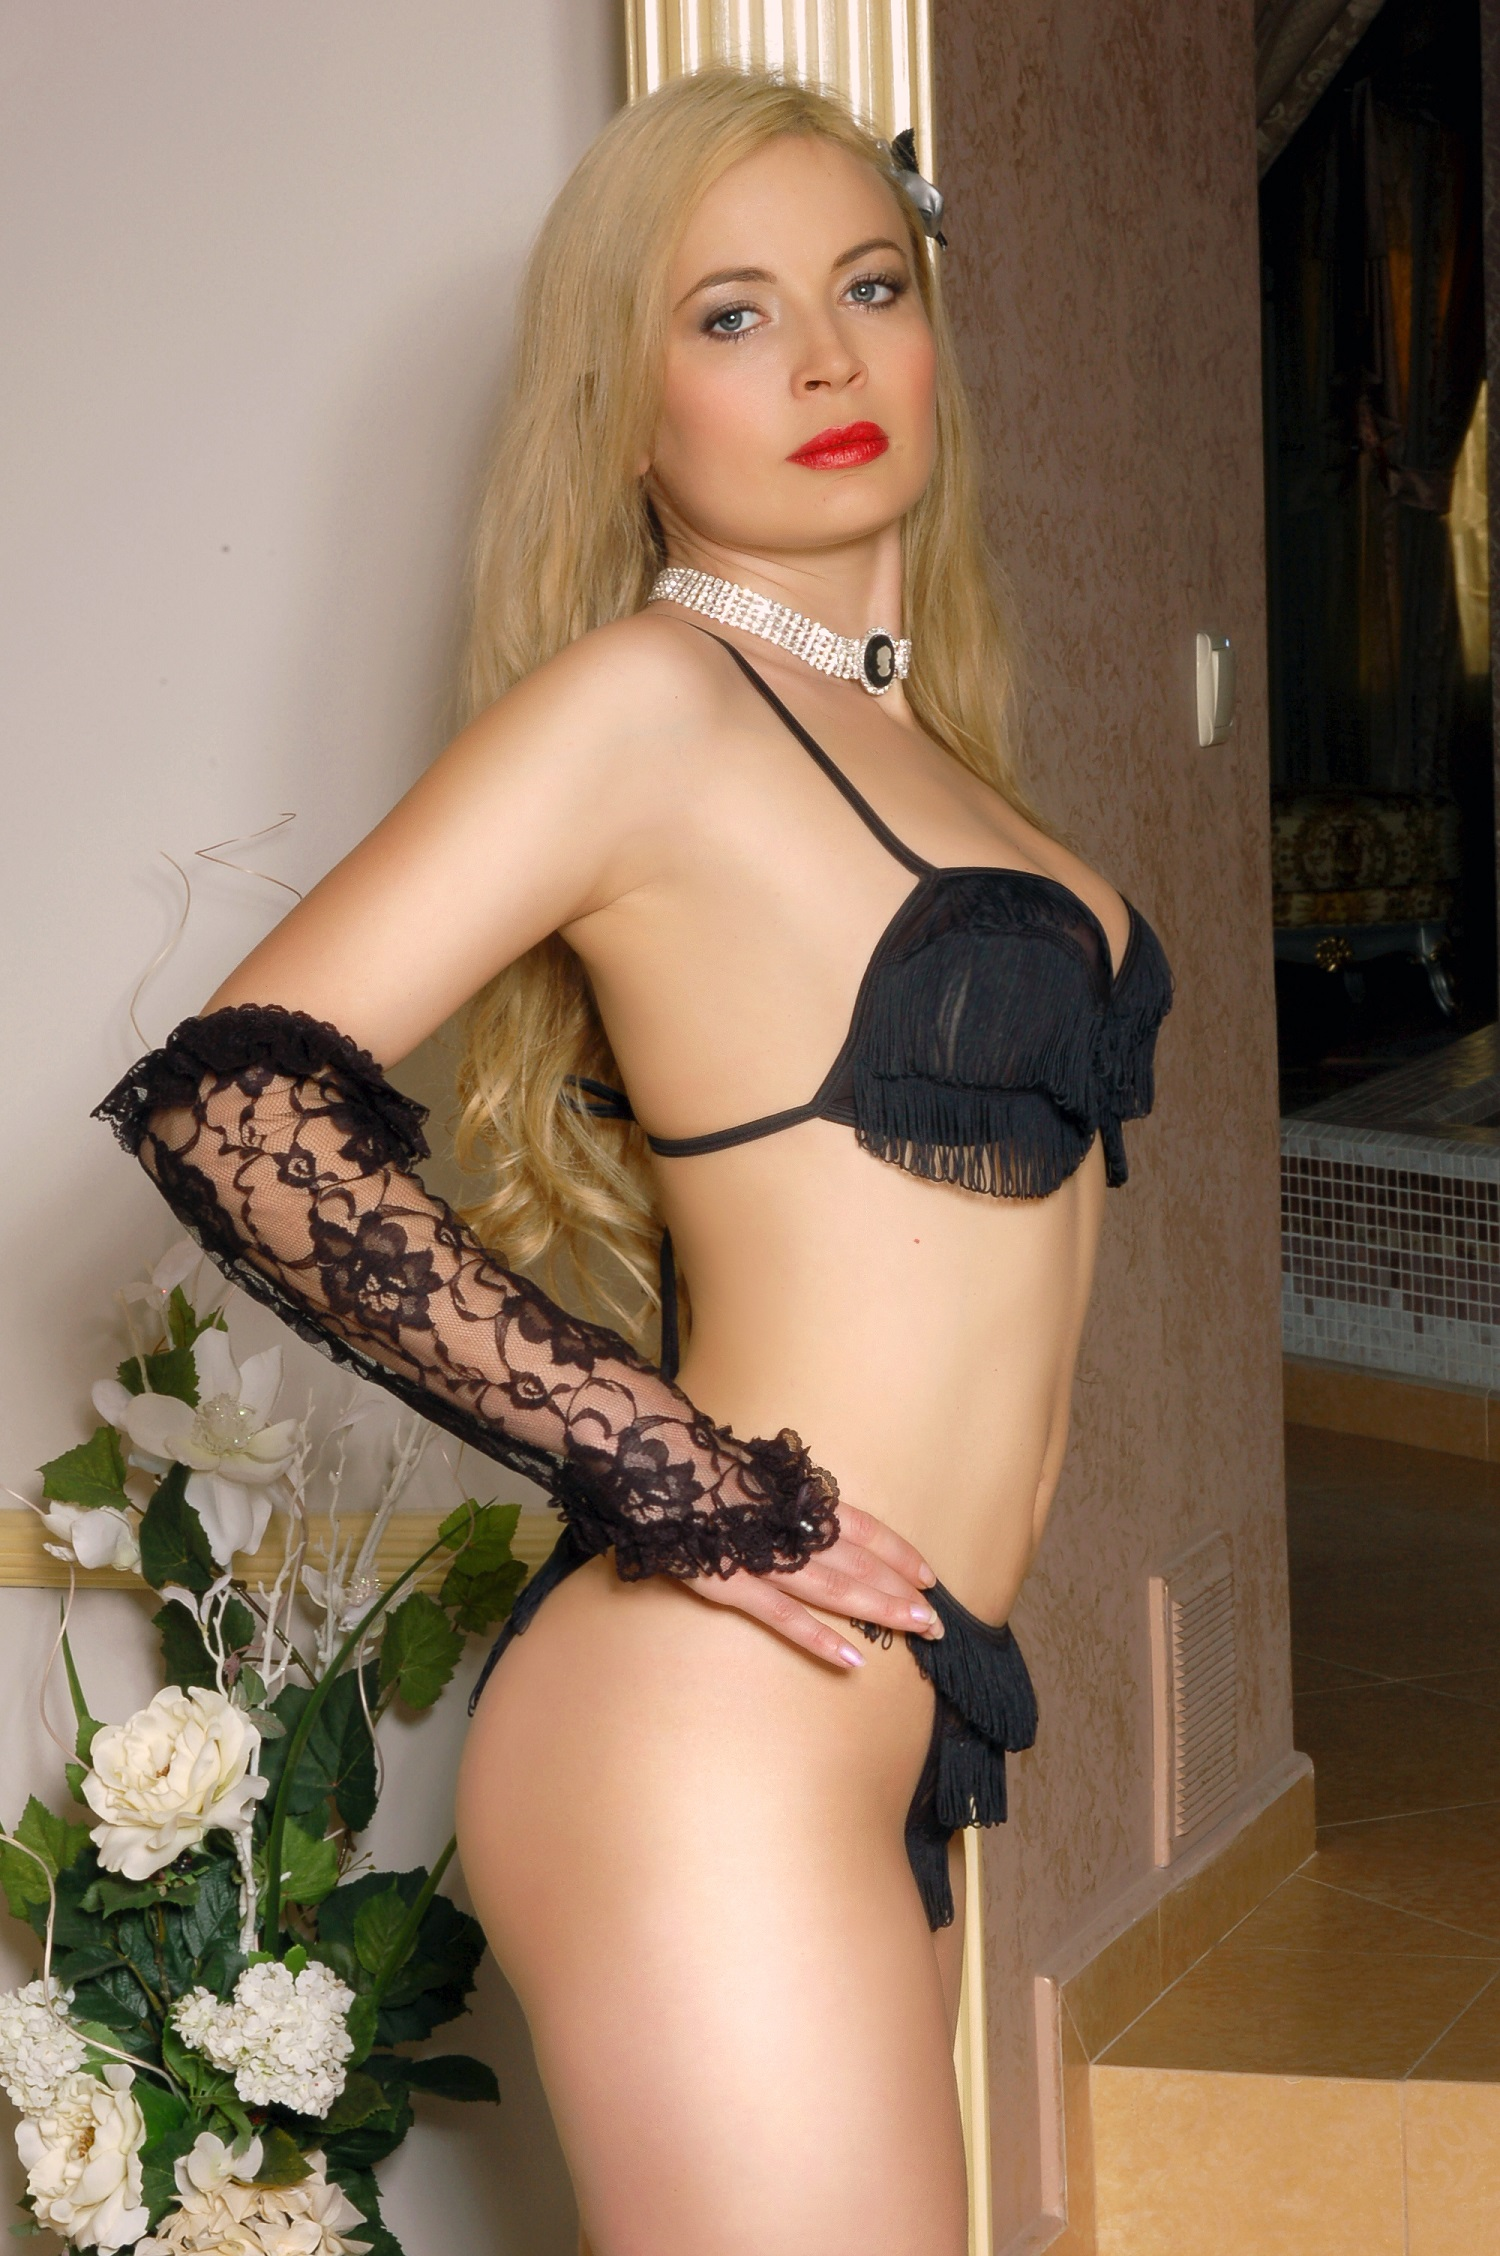 Newport Available Escort Independent Multiple Hours Special